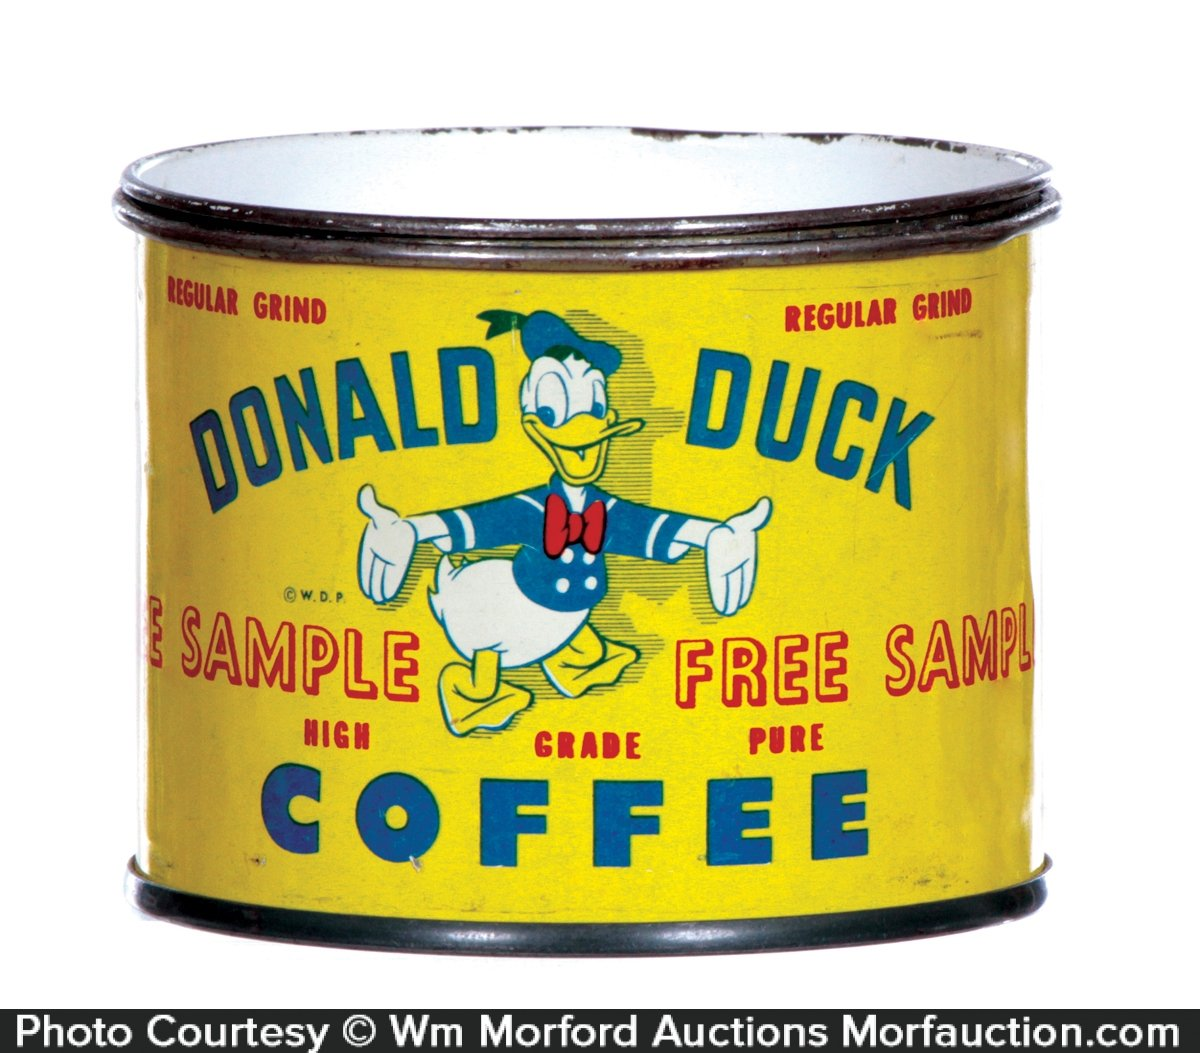 Donald Duck Coffee Sample Bank